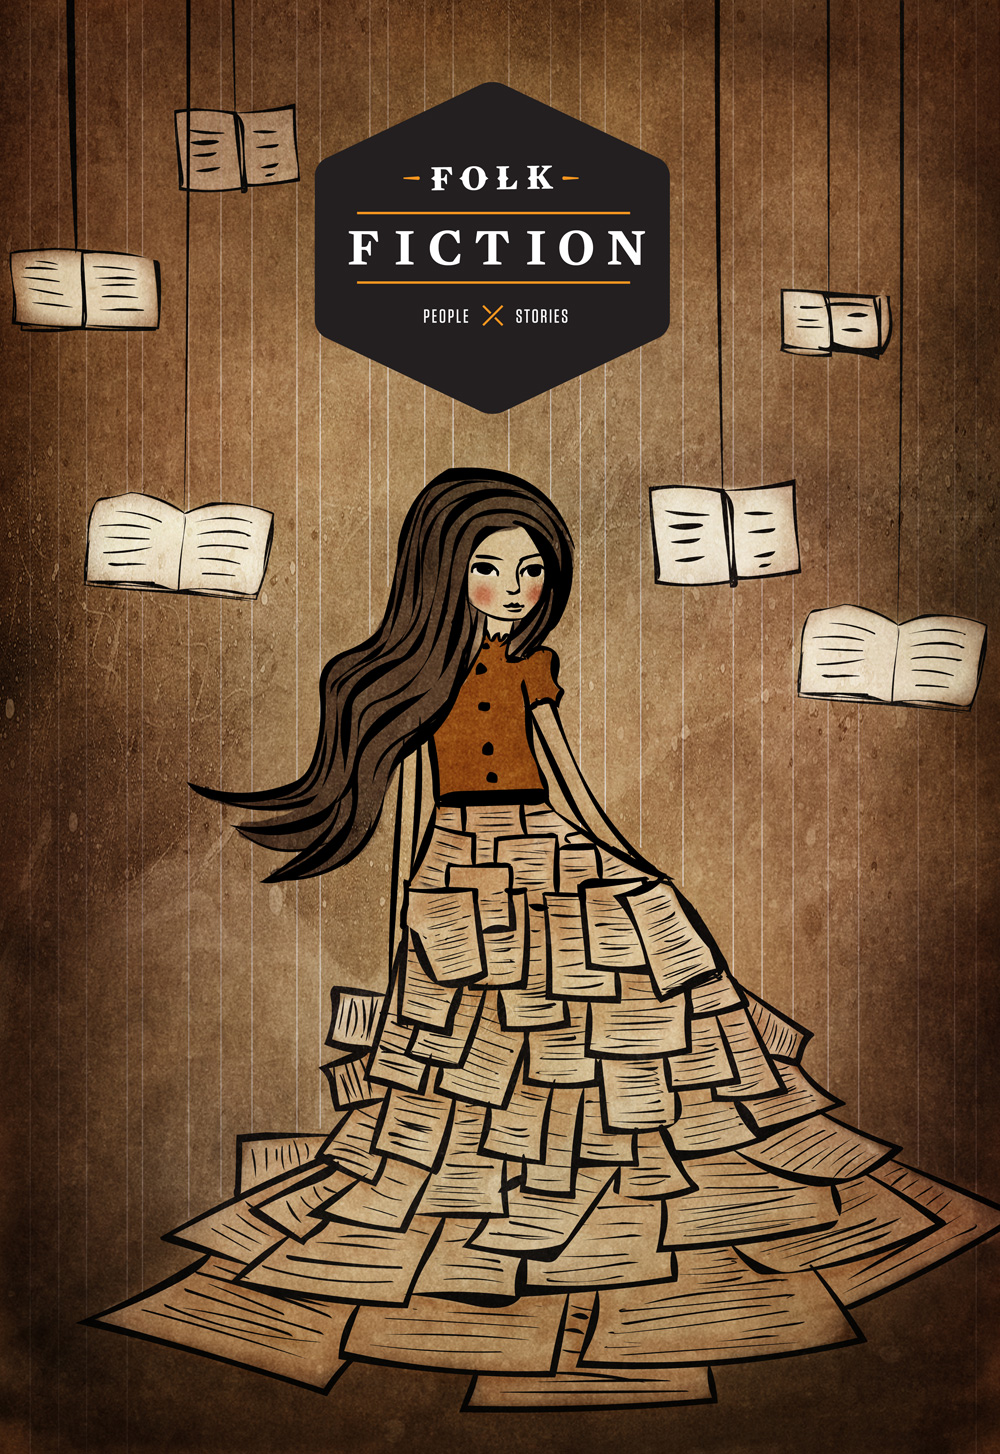 FolkFiction_Poster_03_Revised_web